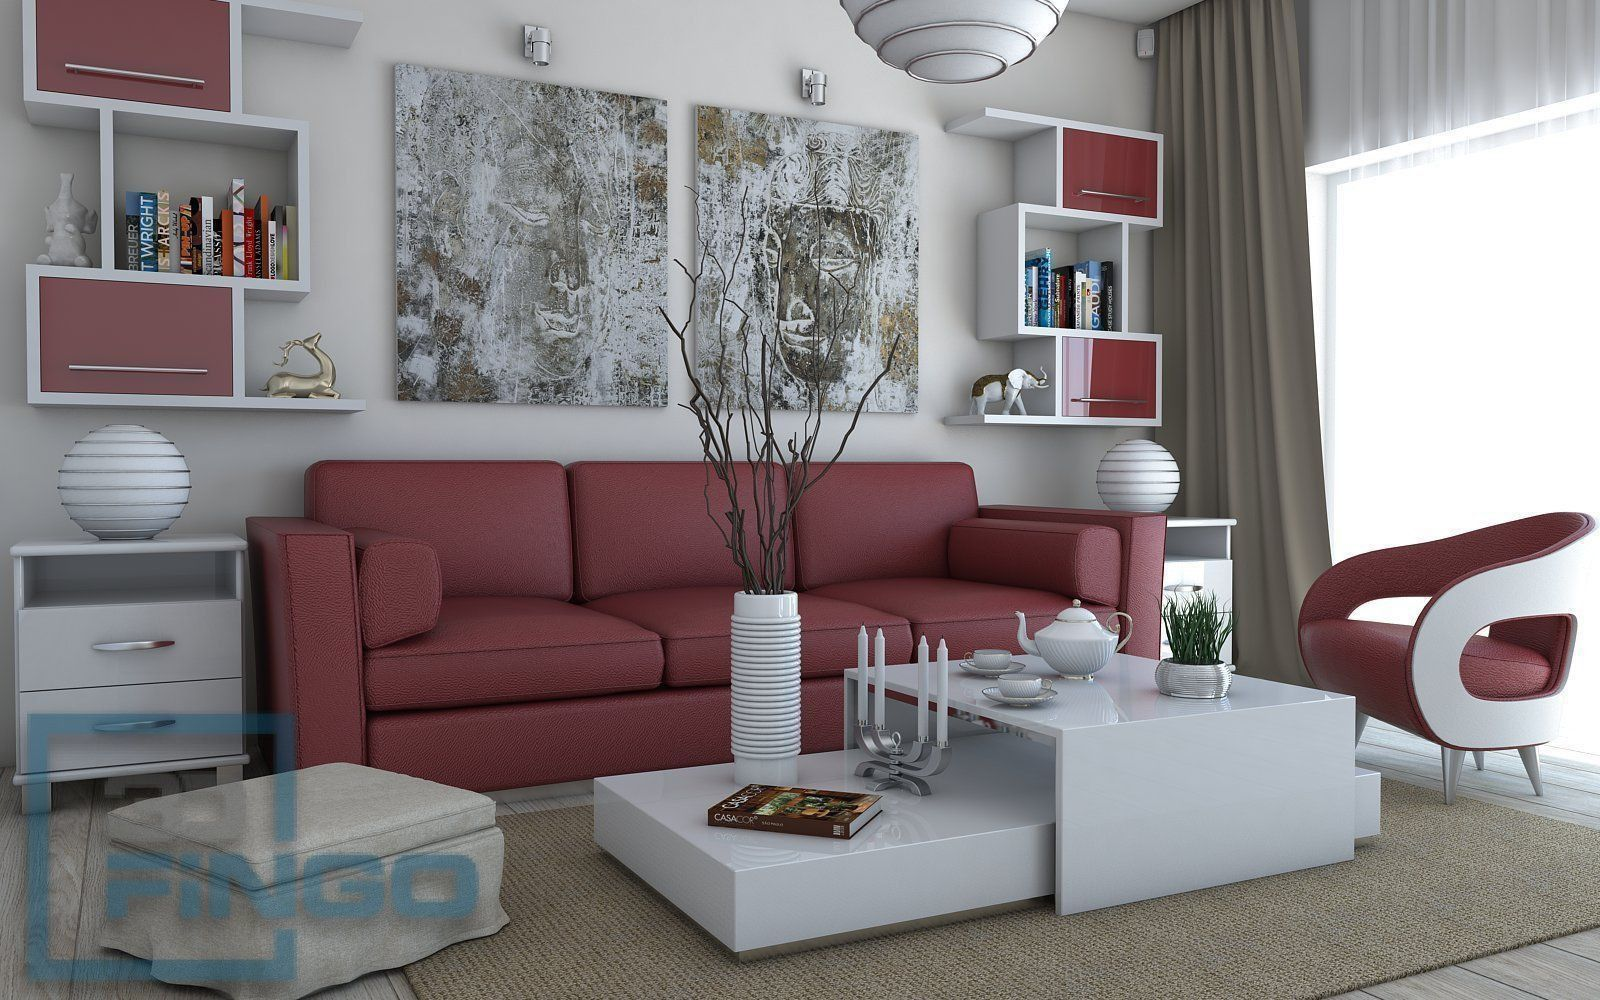 Living Room Interior Scene With Images Living Room Images